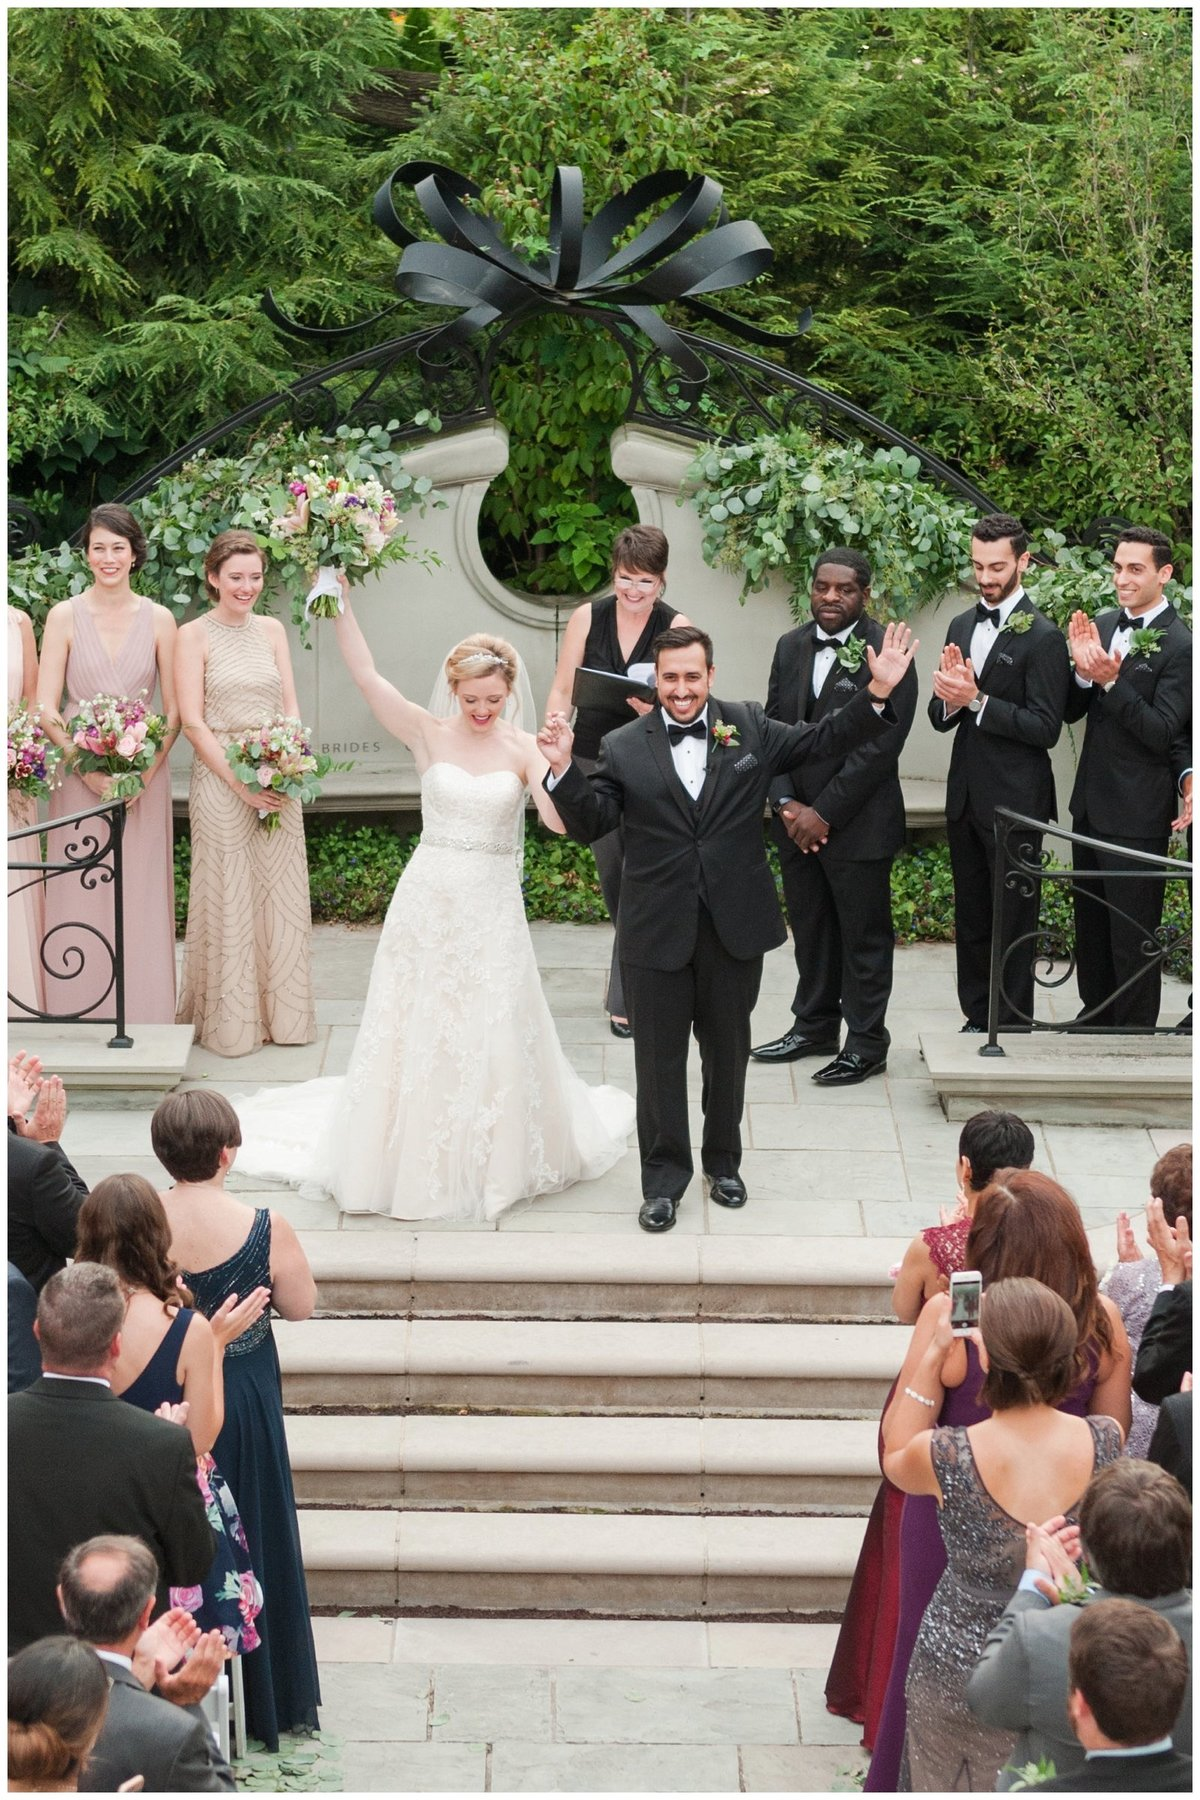 Franklin Park Conservatory Wedding The Palm House Bridal Garden Grove_0126